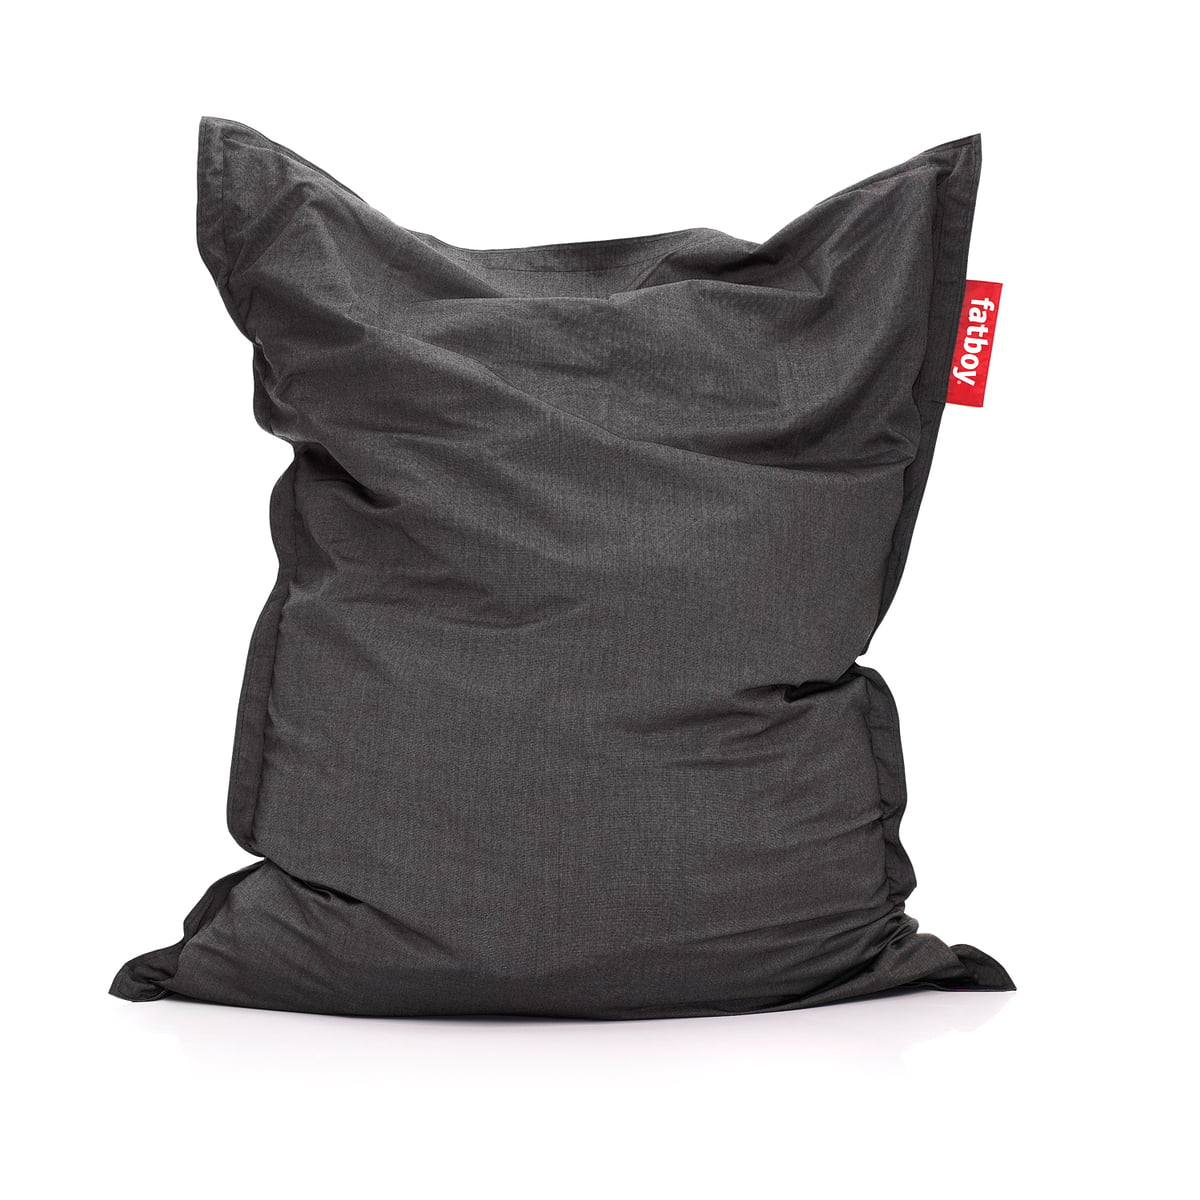 Bean Bag Sitzsack The Original Outdoor Beanbag By Fatboy